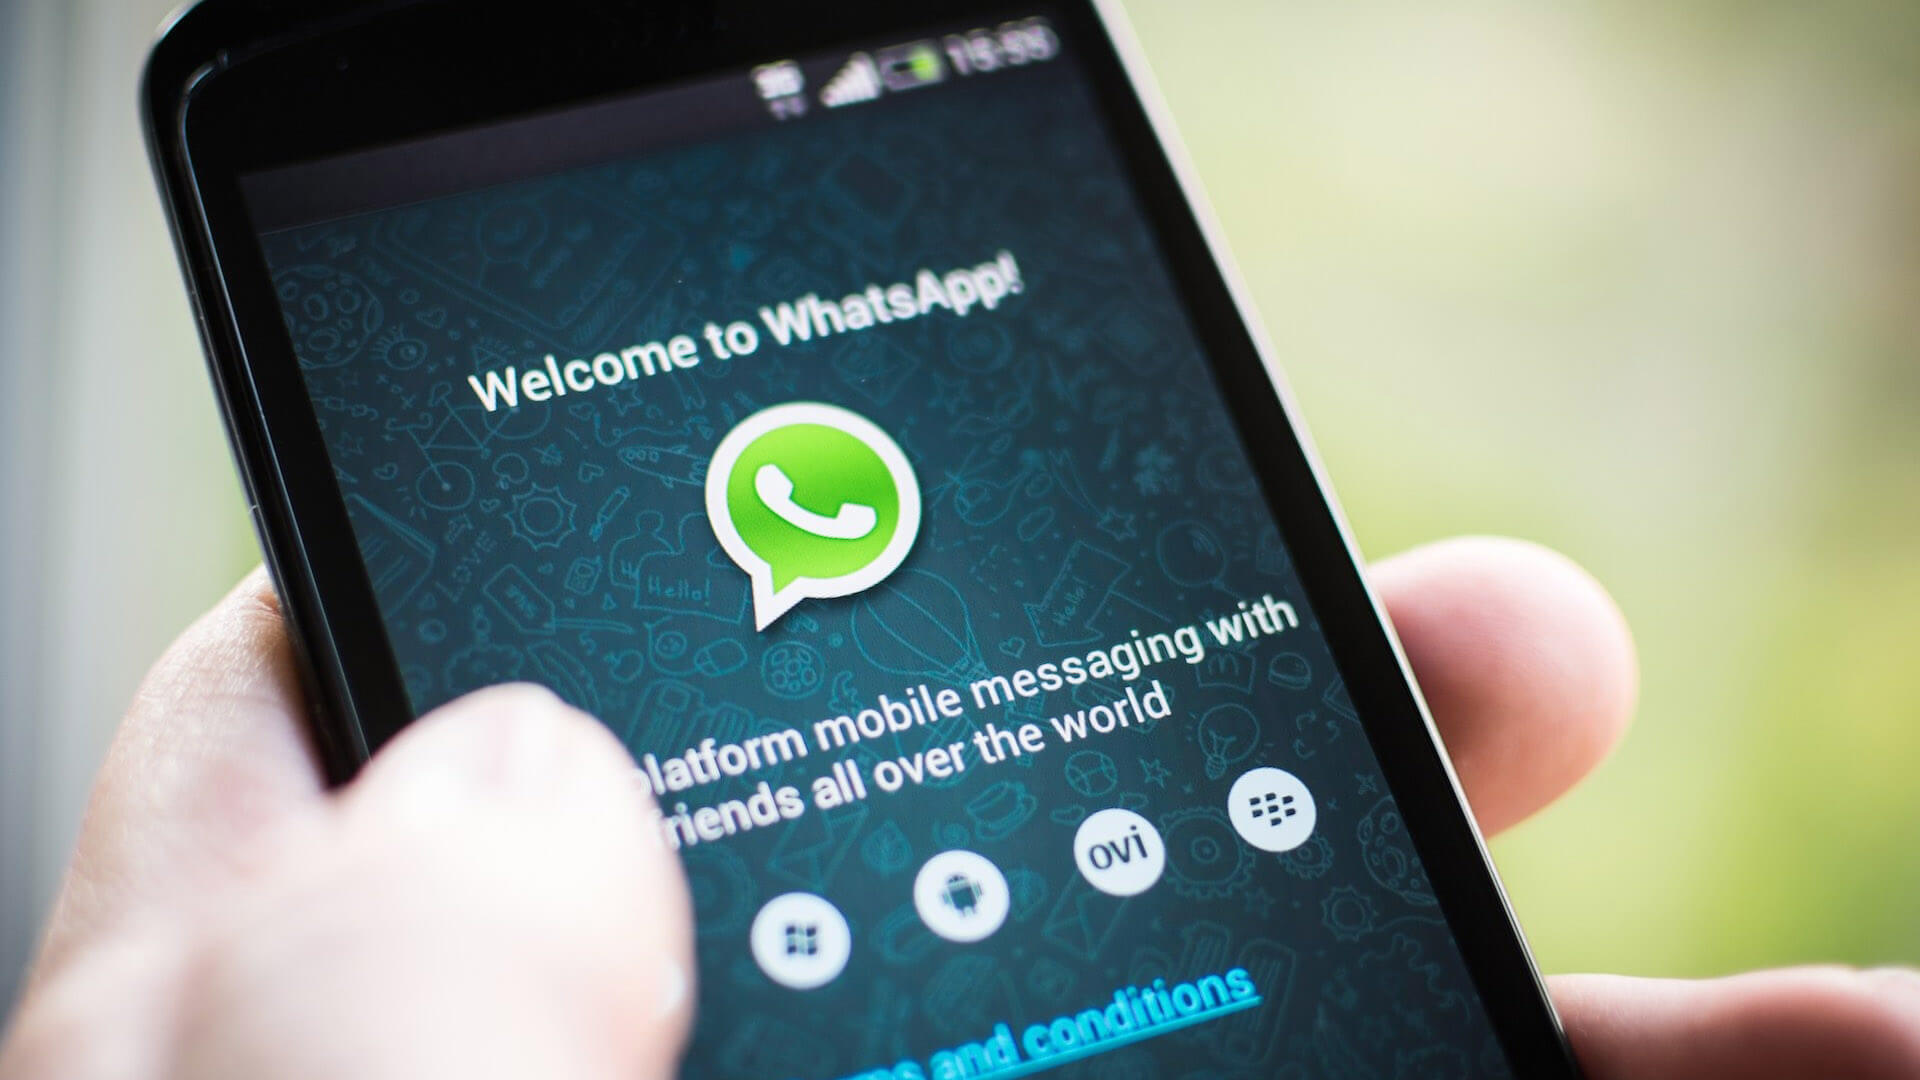 WhatsApp, messenger.18.262 para Android - Descargar Descargar, whatsApp gratis - ltima versin - Softonic WhatsApp, messenger - Apps en Google Play